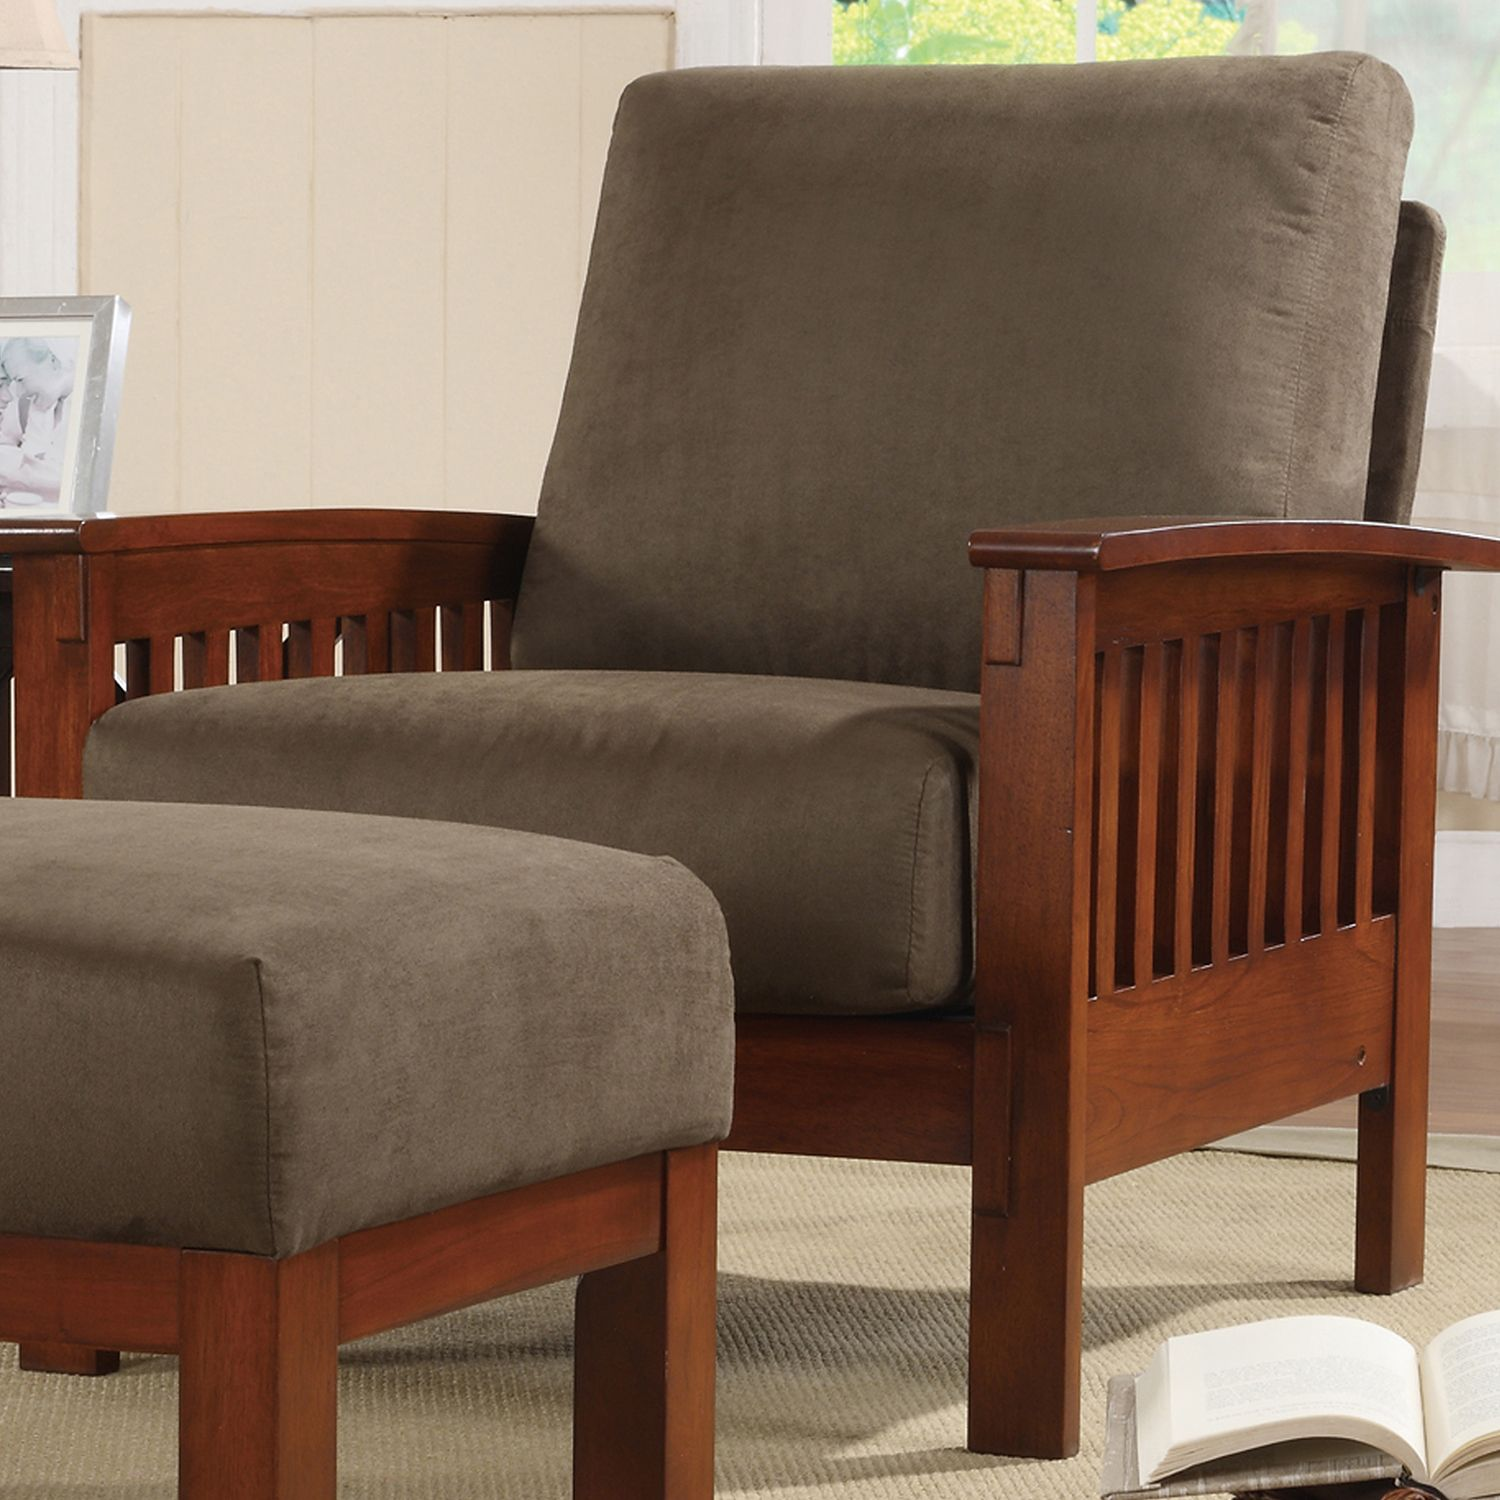 Mission Style Recliner Chair Add Additional Seating Area To Any Room With This